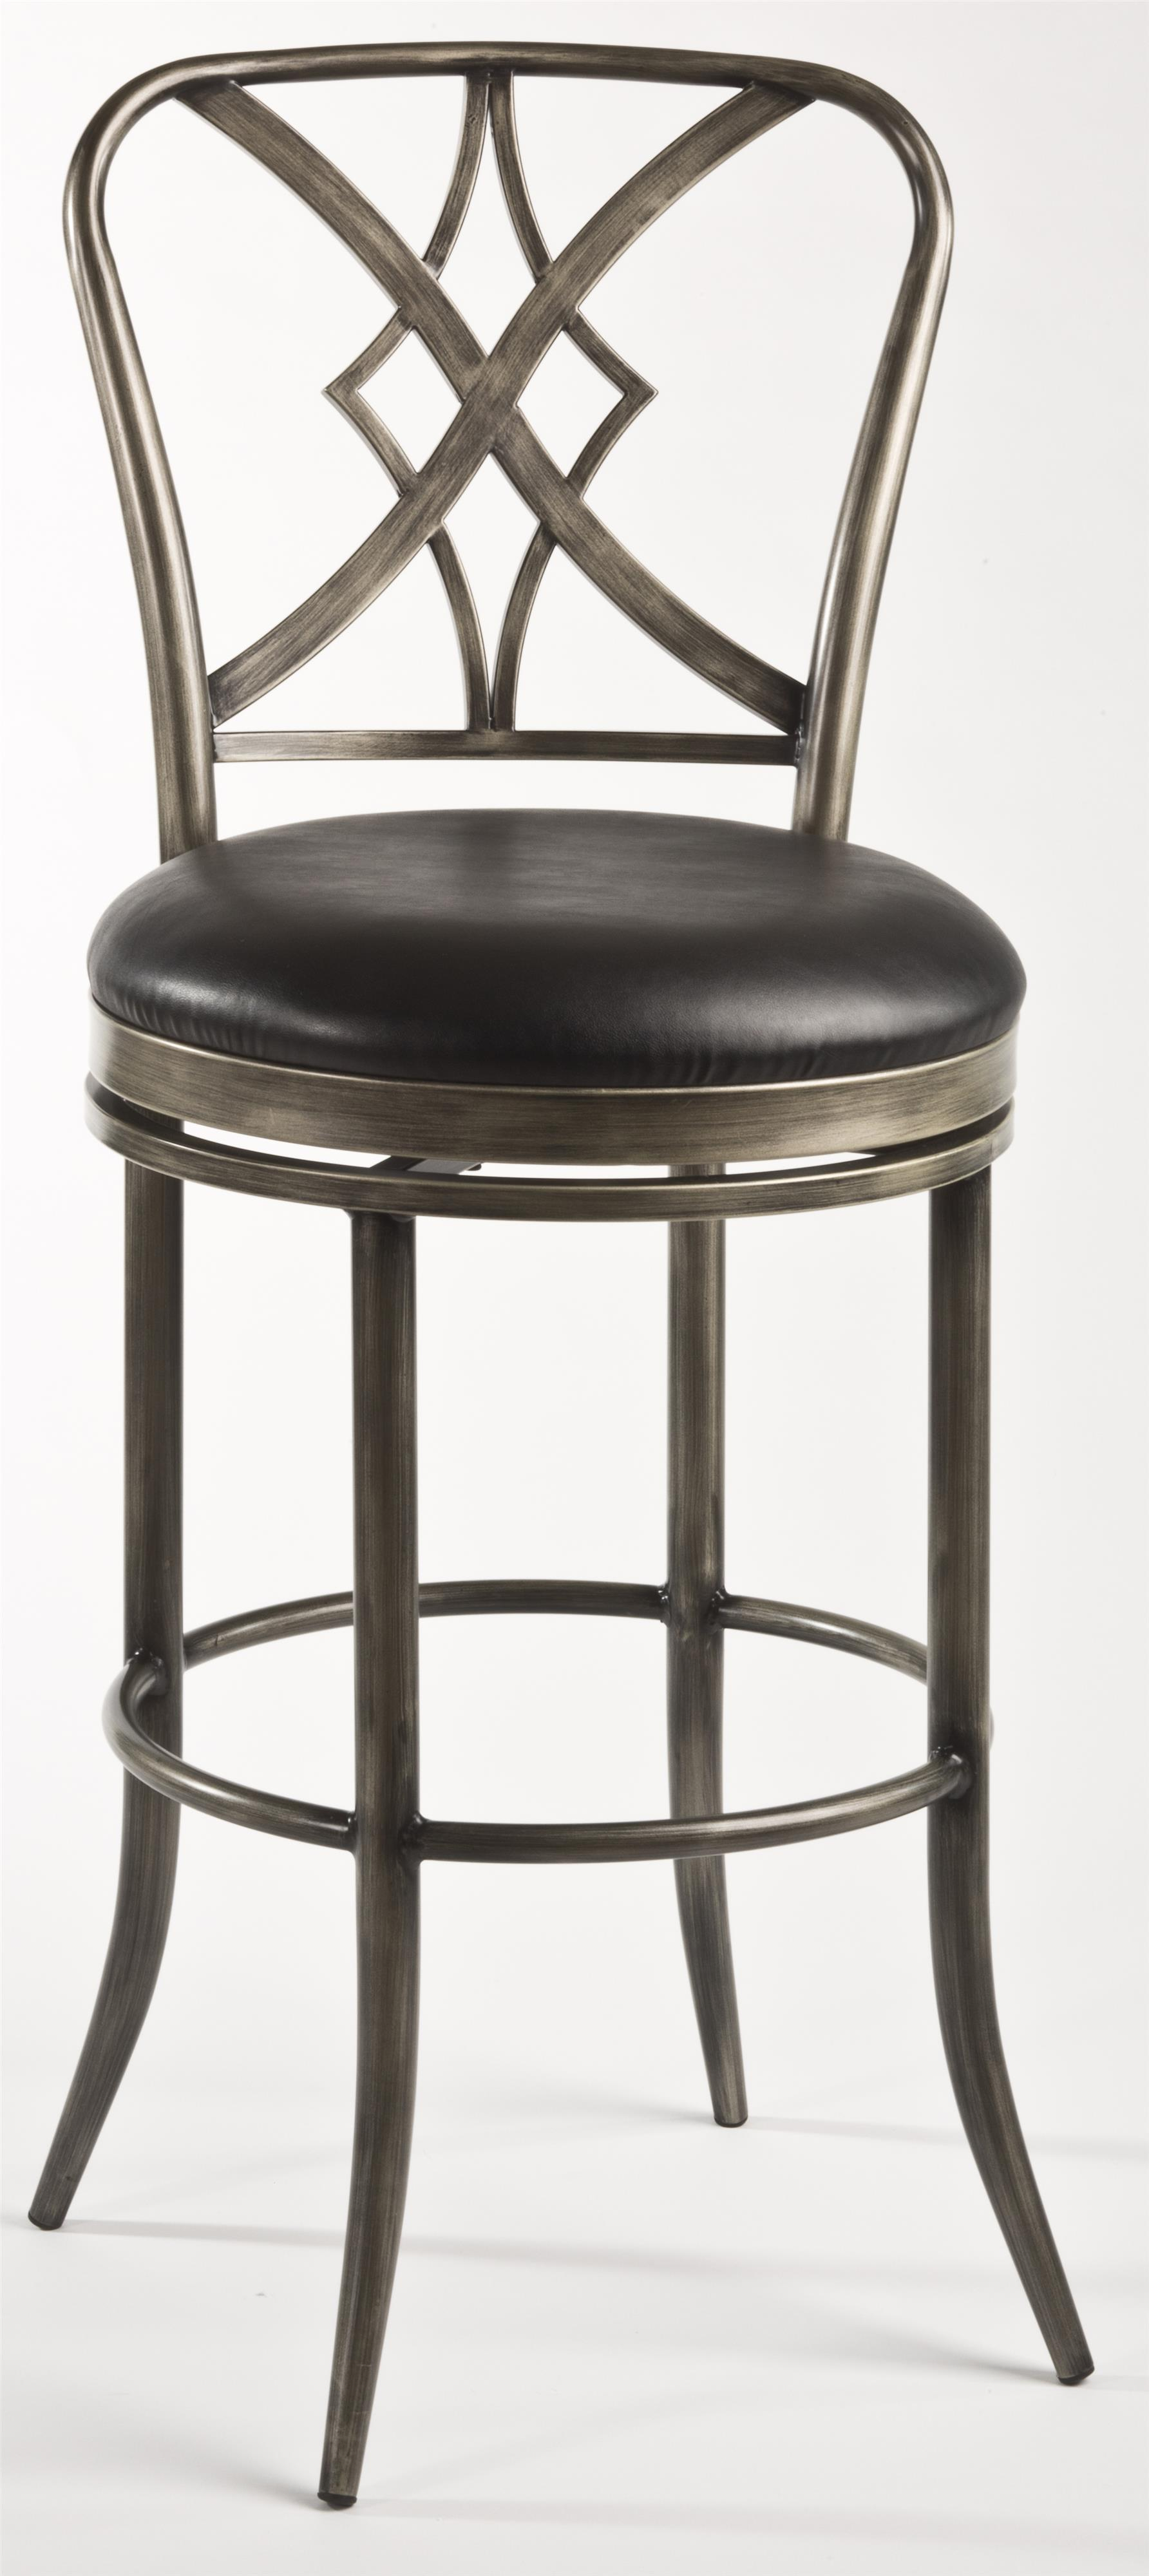 Bright Colored Bar Stools Hillsdale Metal Stools 5124 830 Jacqueline Commercial Bar